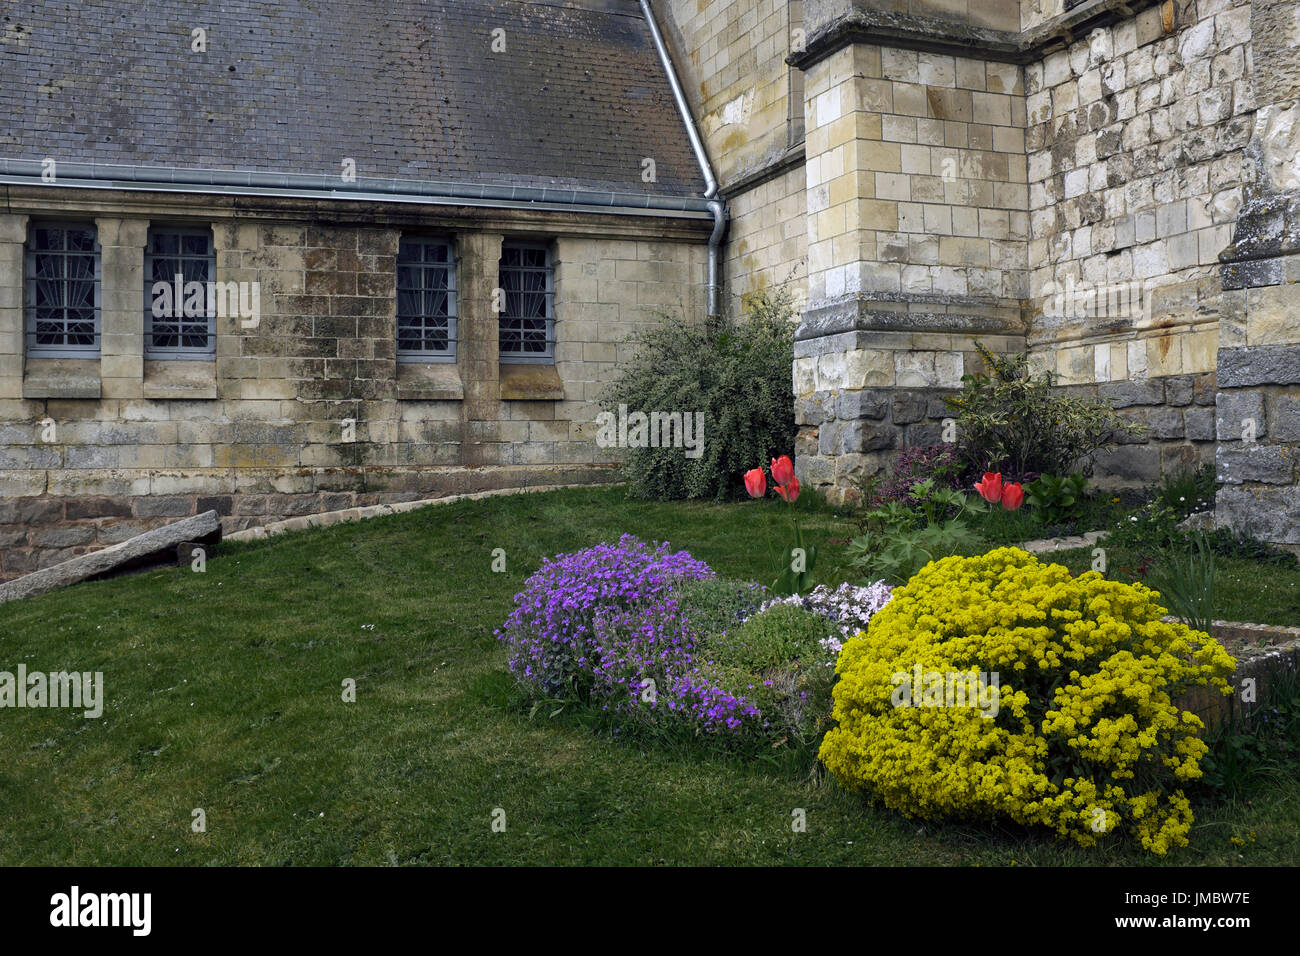 Église Saint-Pierre, Mailly-Maillet, Somme, France - Stock Image